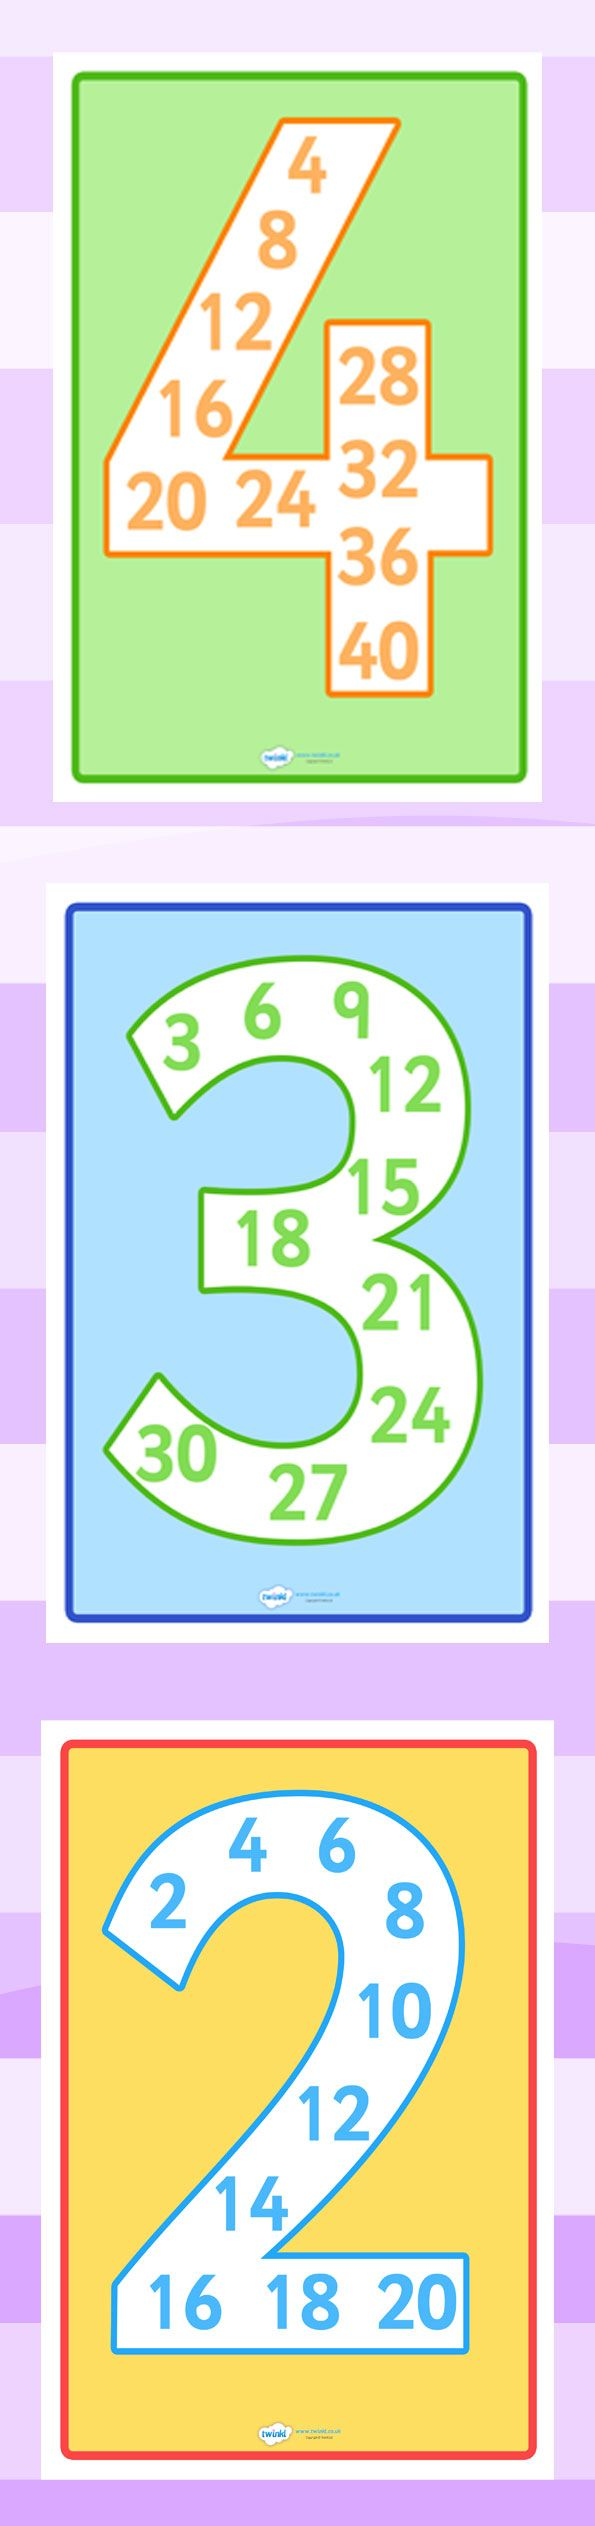 How to learn multiplication tables quickly 10 ideas mark twinkl resources number multiples individual display posters classroom printables for pre school kindergarten maths classroom displaysclassroom table gamestrikefo Image collections